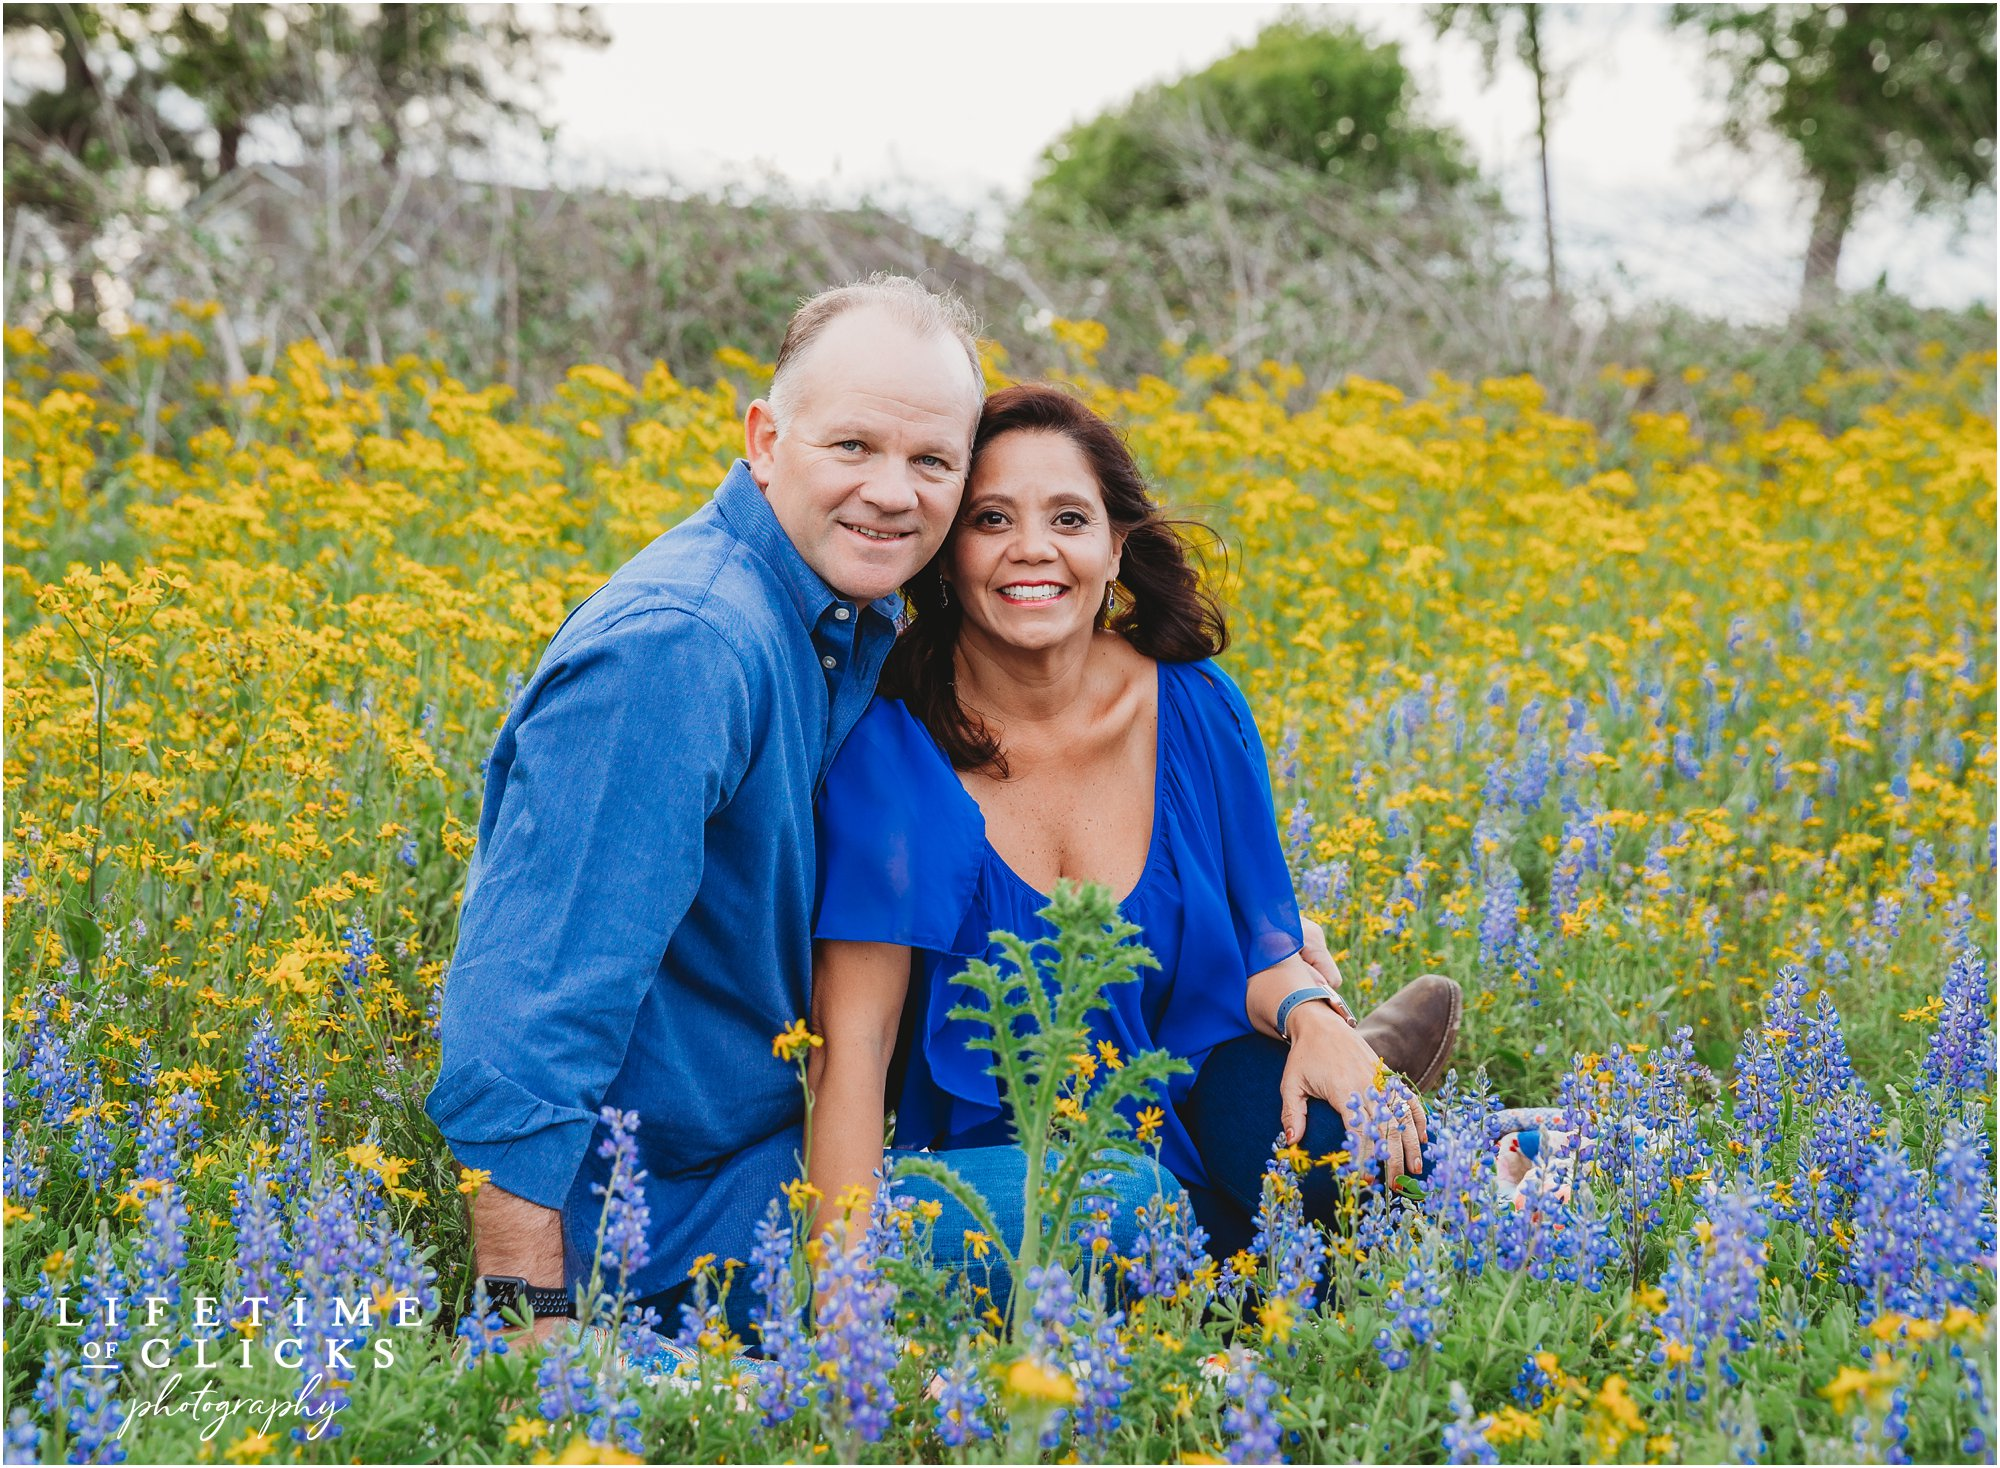 Parent photo at Houston Bluebonnets Sessions by Lifetime of Clicks Photography